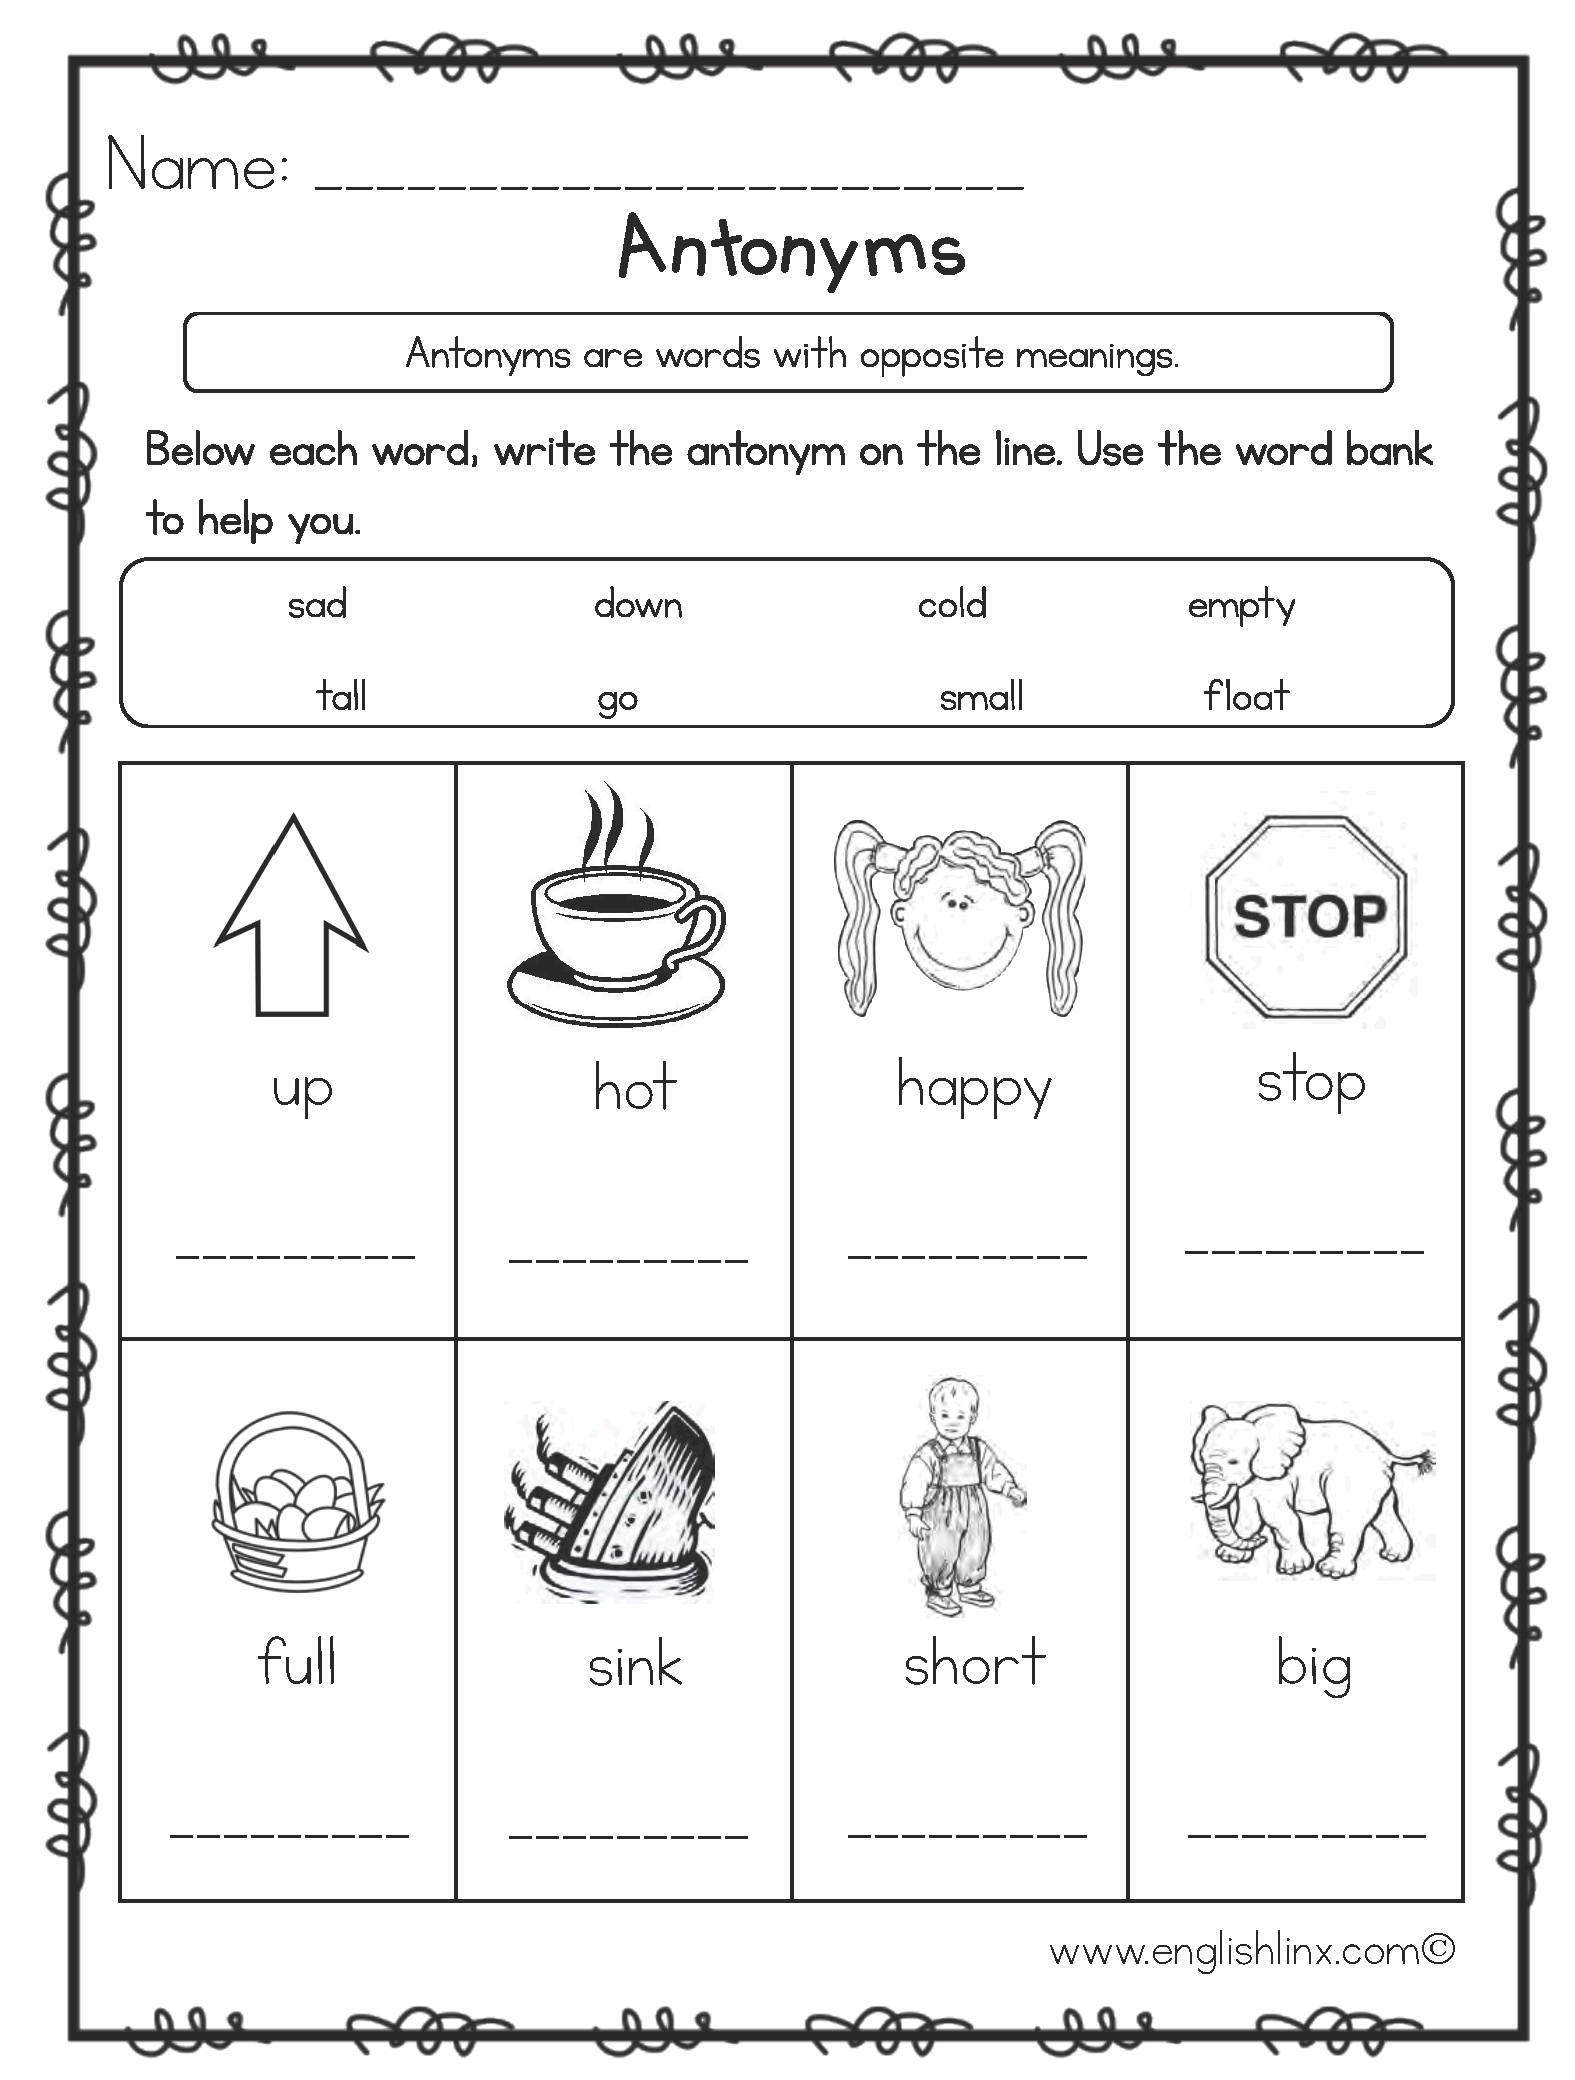 Worksheets Antonym Worksheets englishlinx com antonyms worksheets write the worksheets